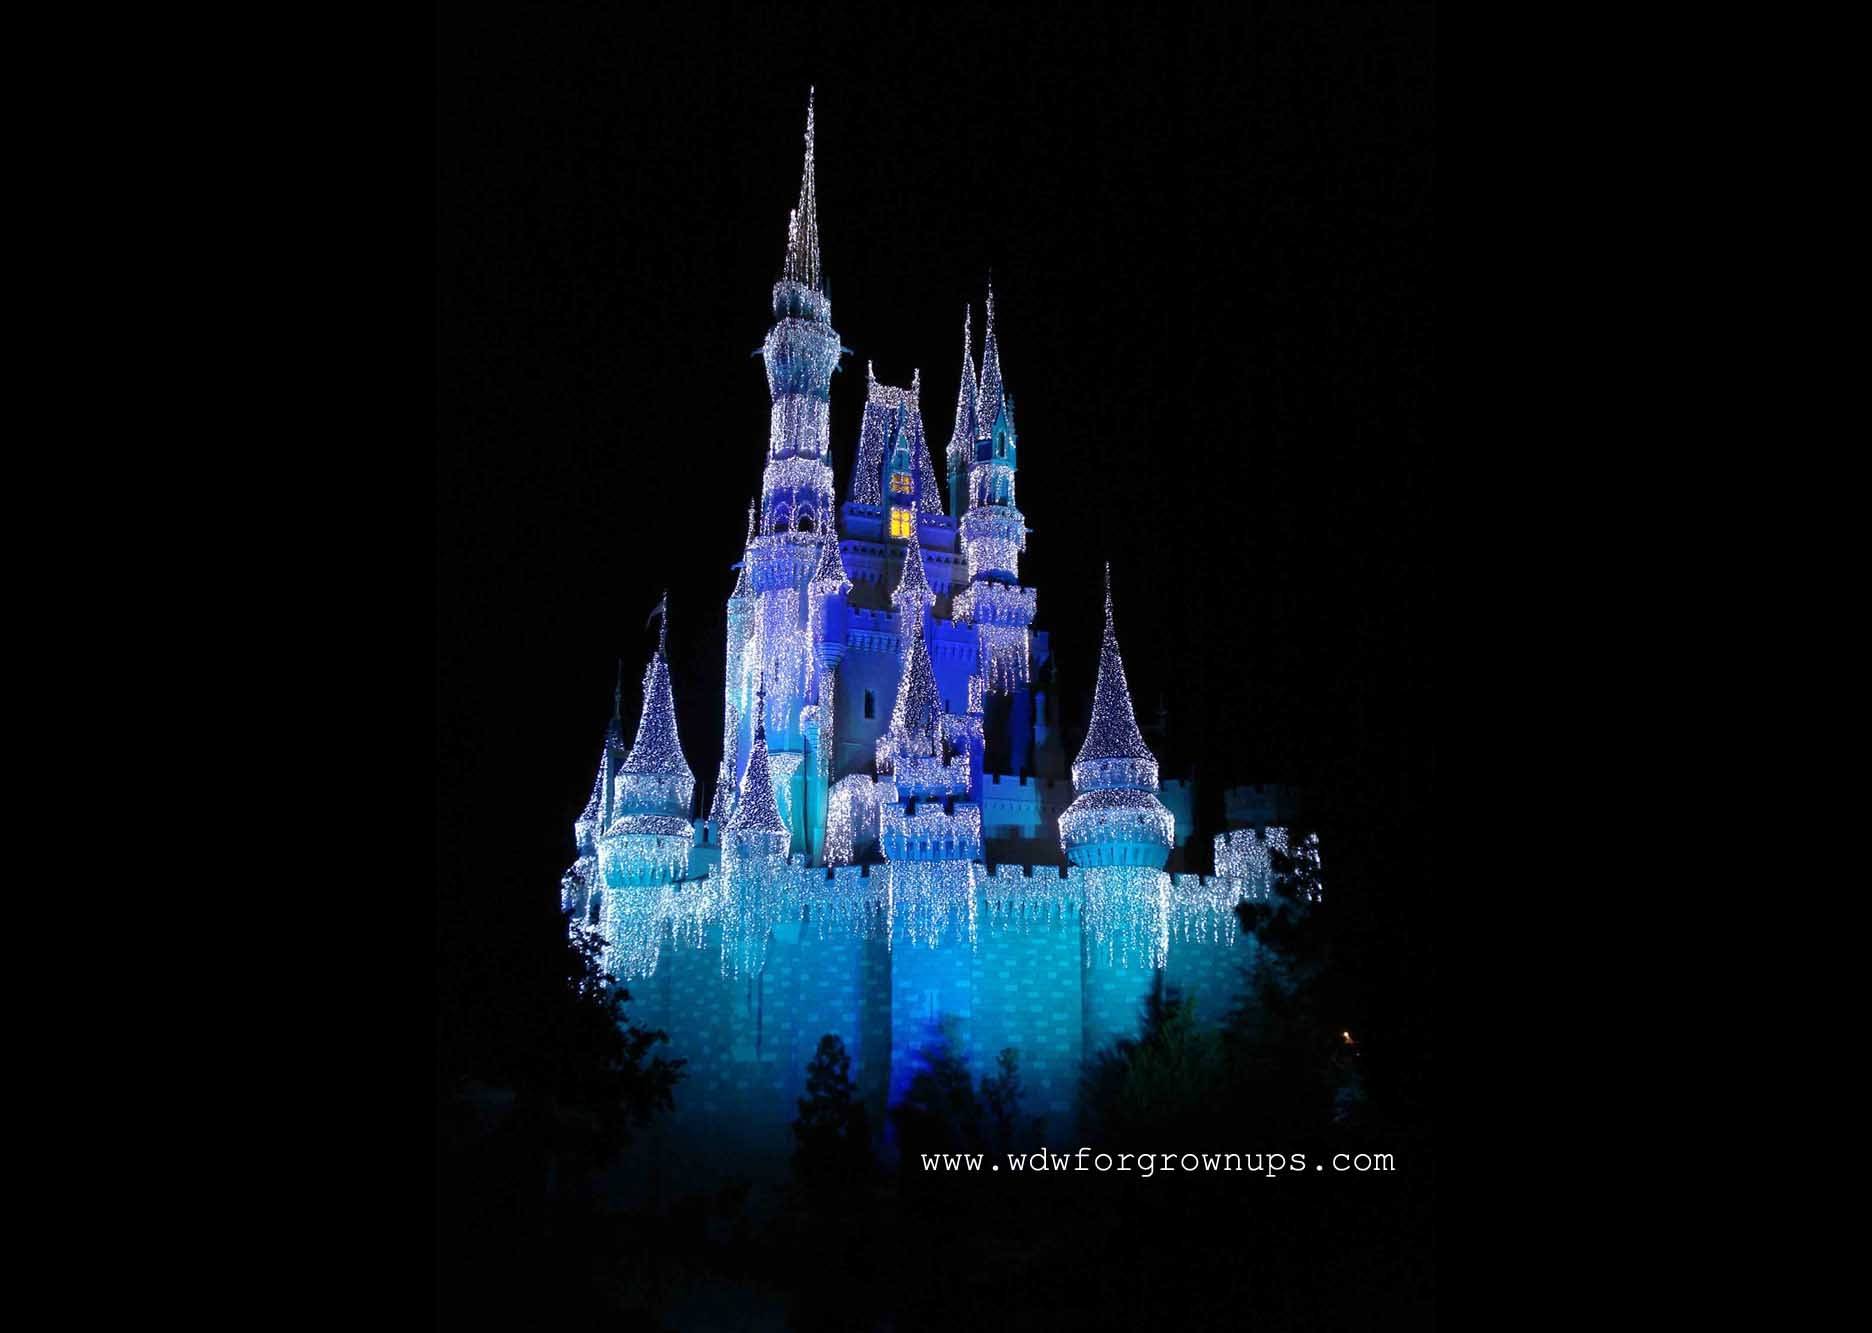 Disney Desktop Wallpaper Walt Disney World For Grownups 1872x1333